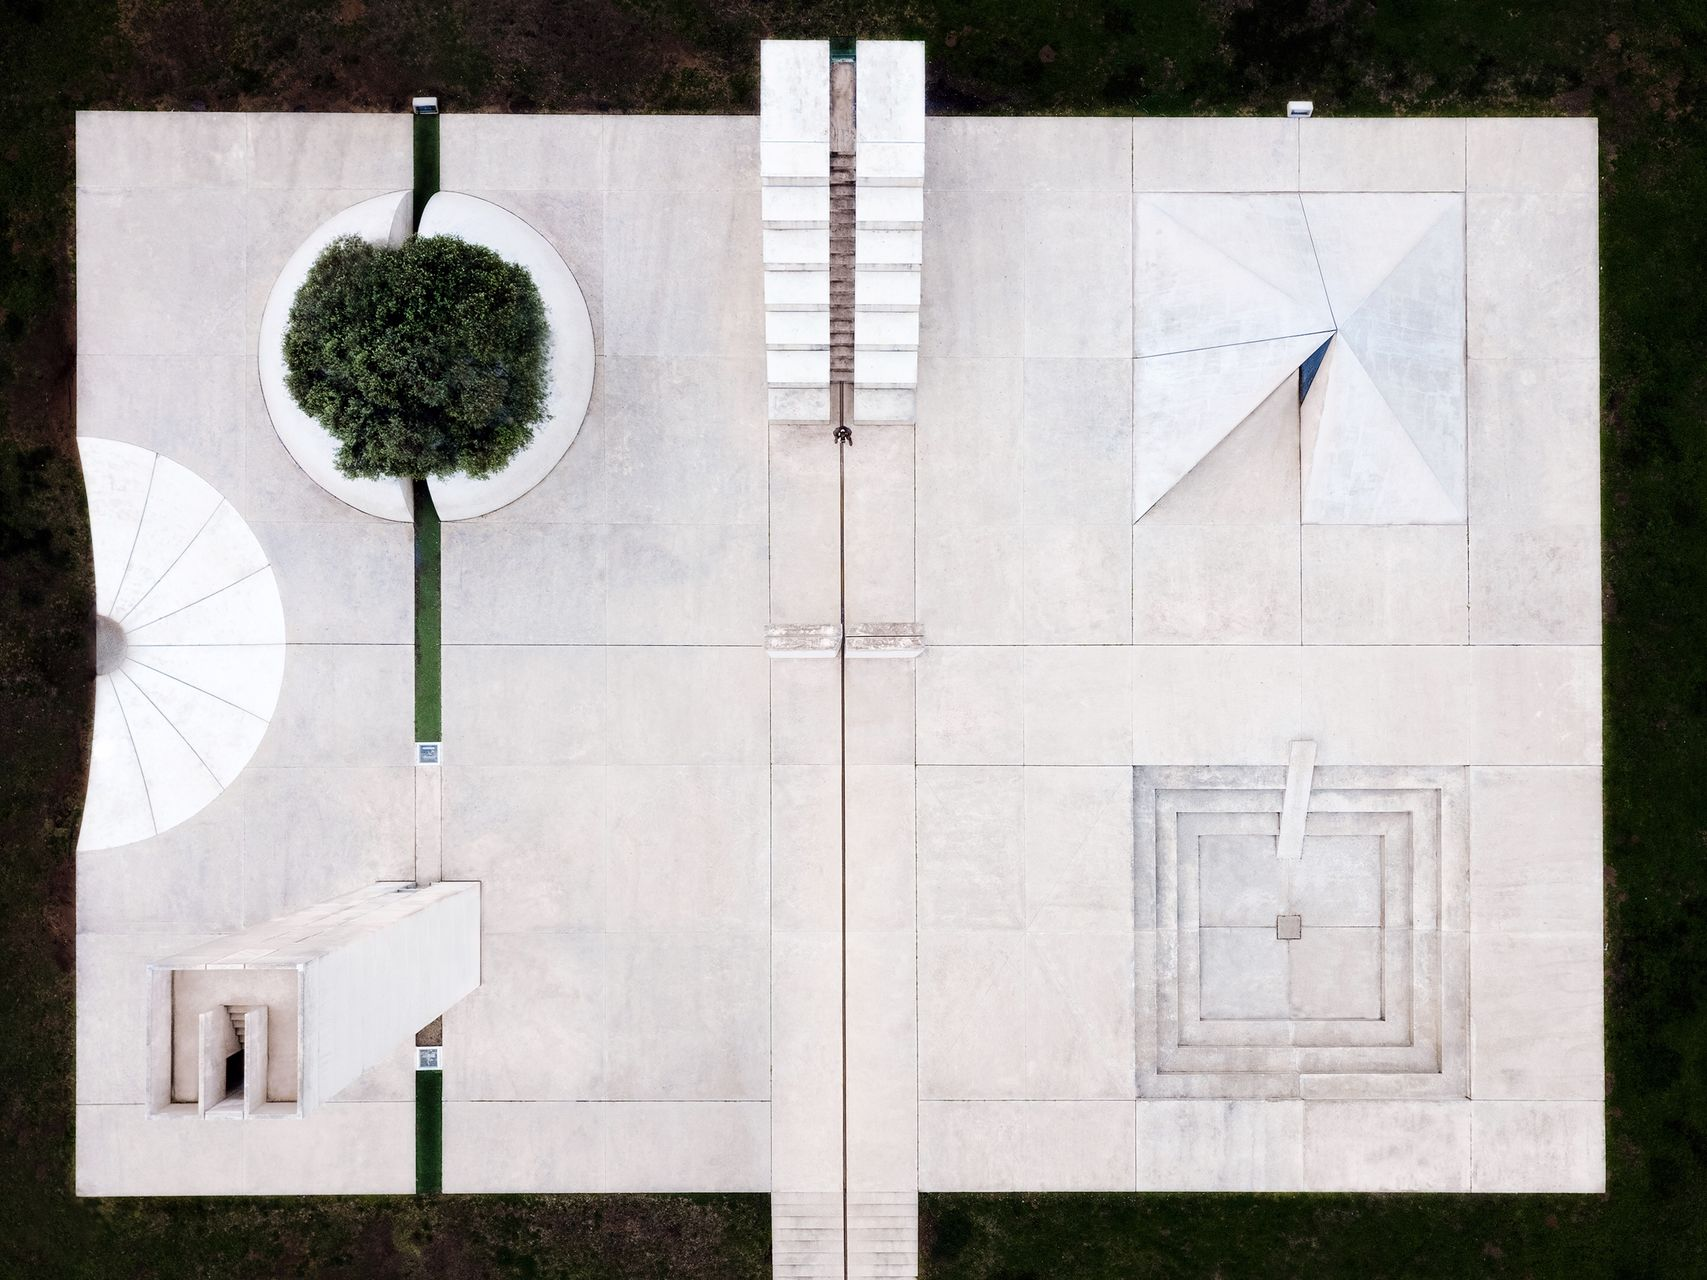 White Square minimalism white structures Architecture no people outdoors aerial view The Graphic City